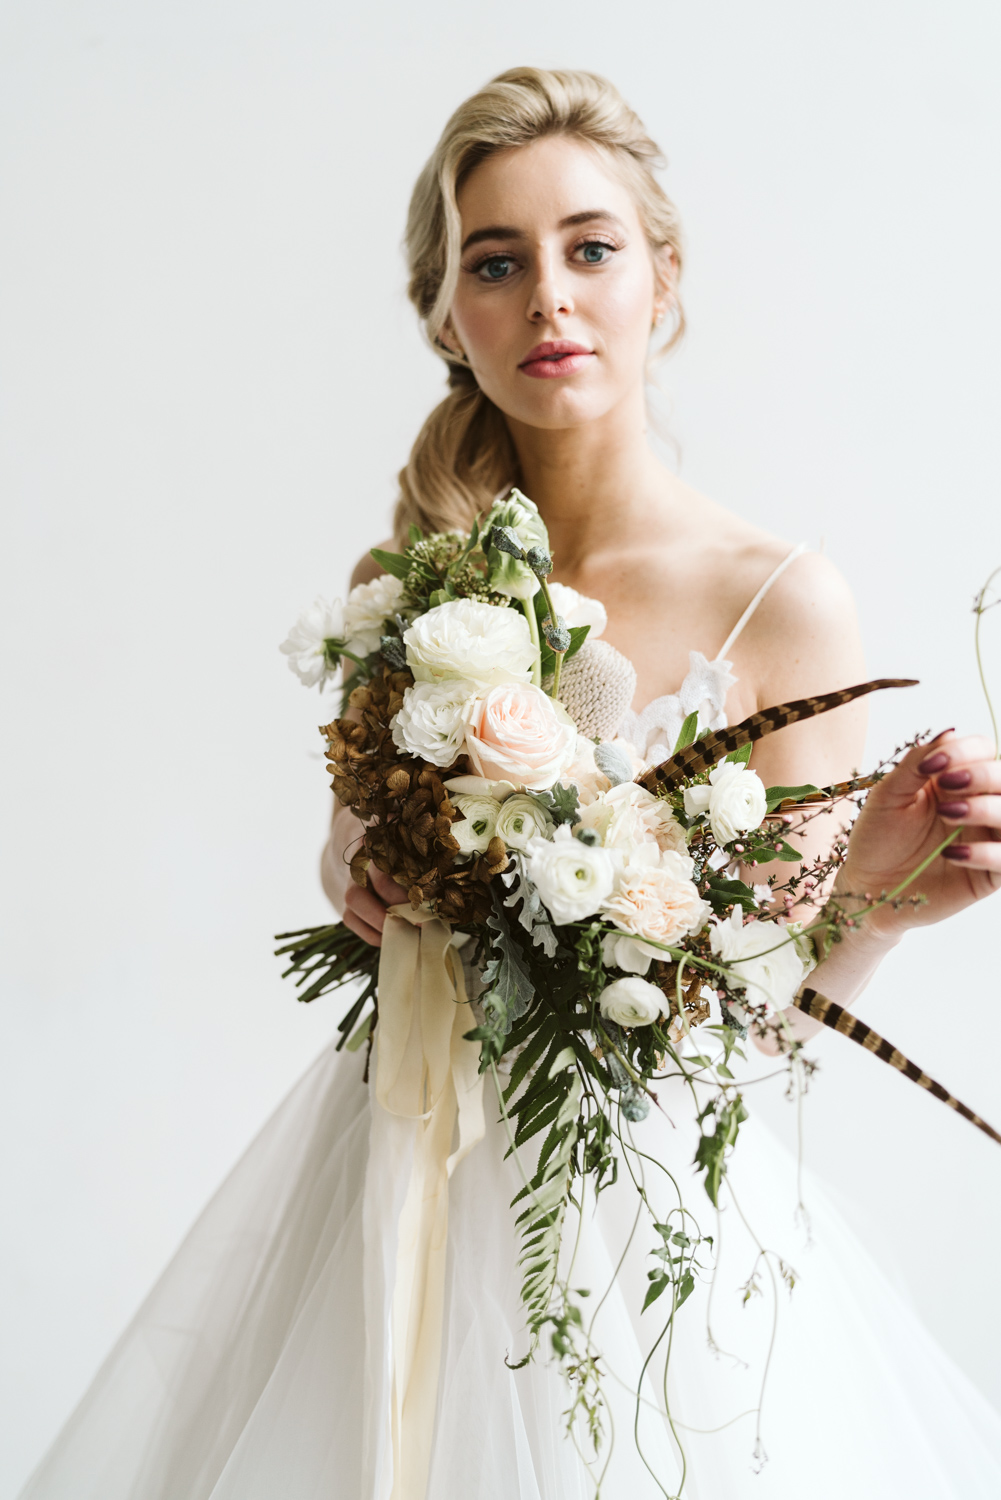 April Yentas Photography - January Styled Shoot-133.jpg